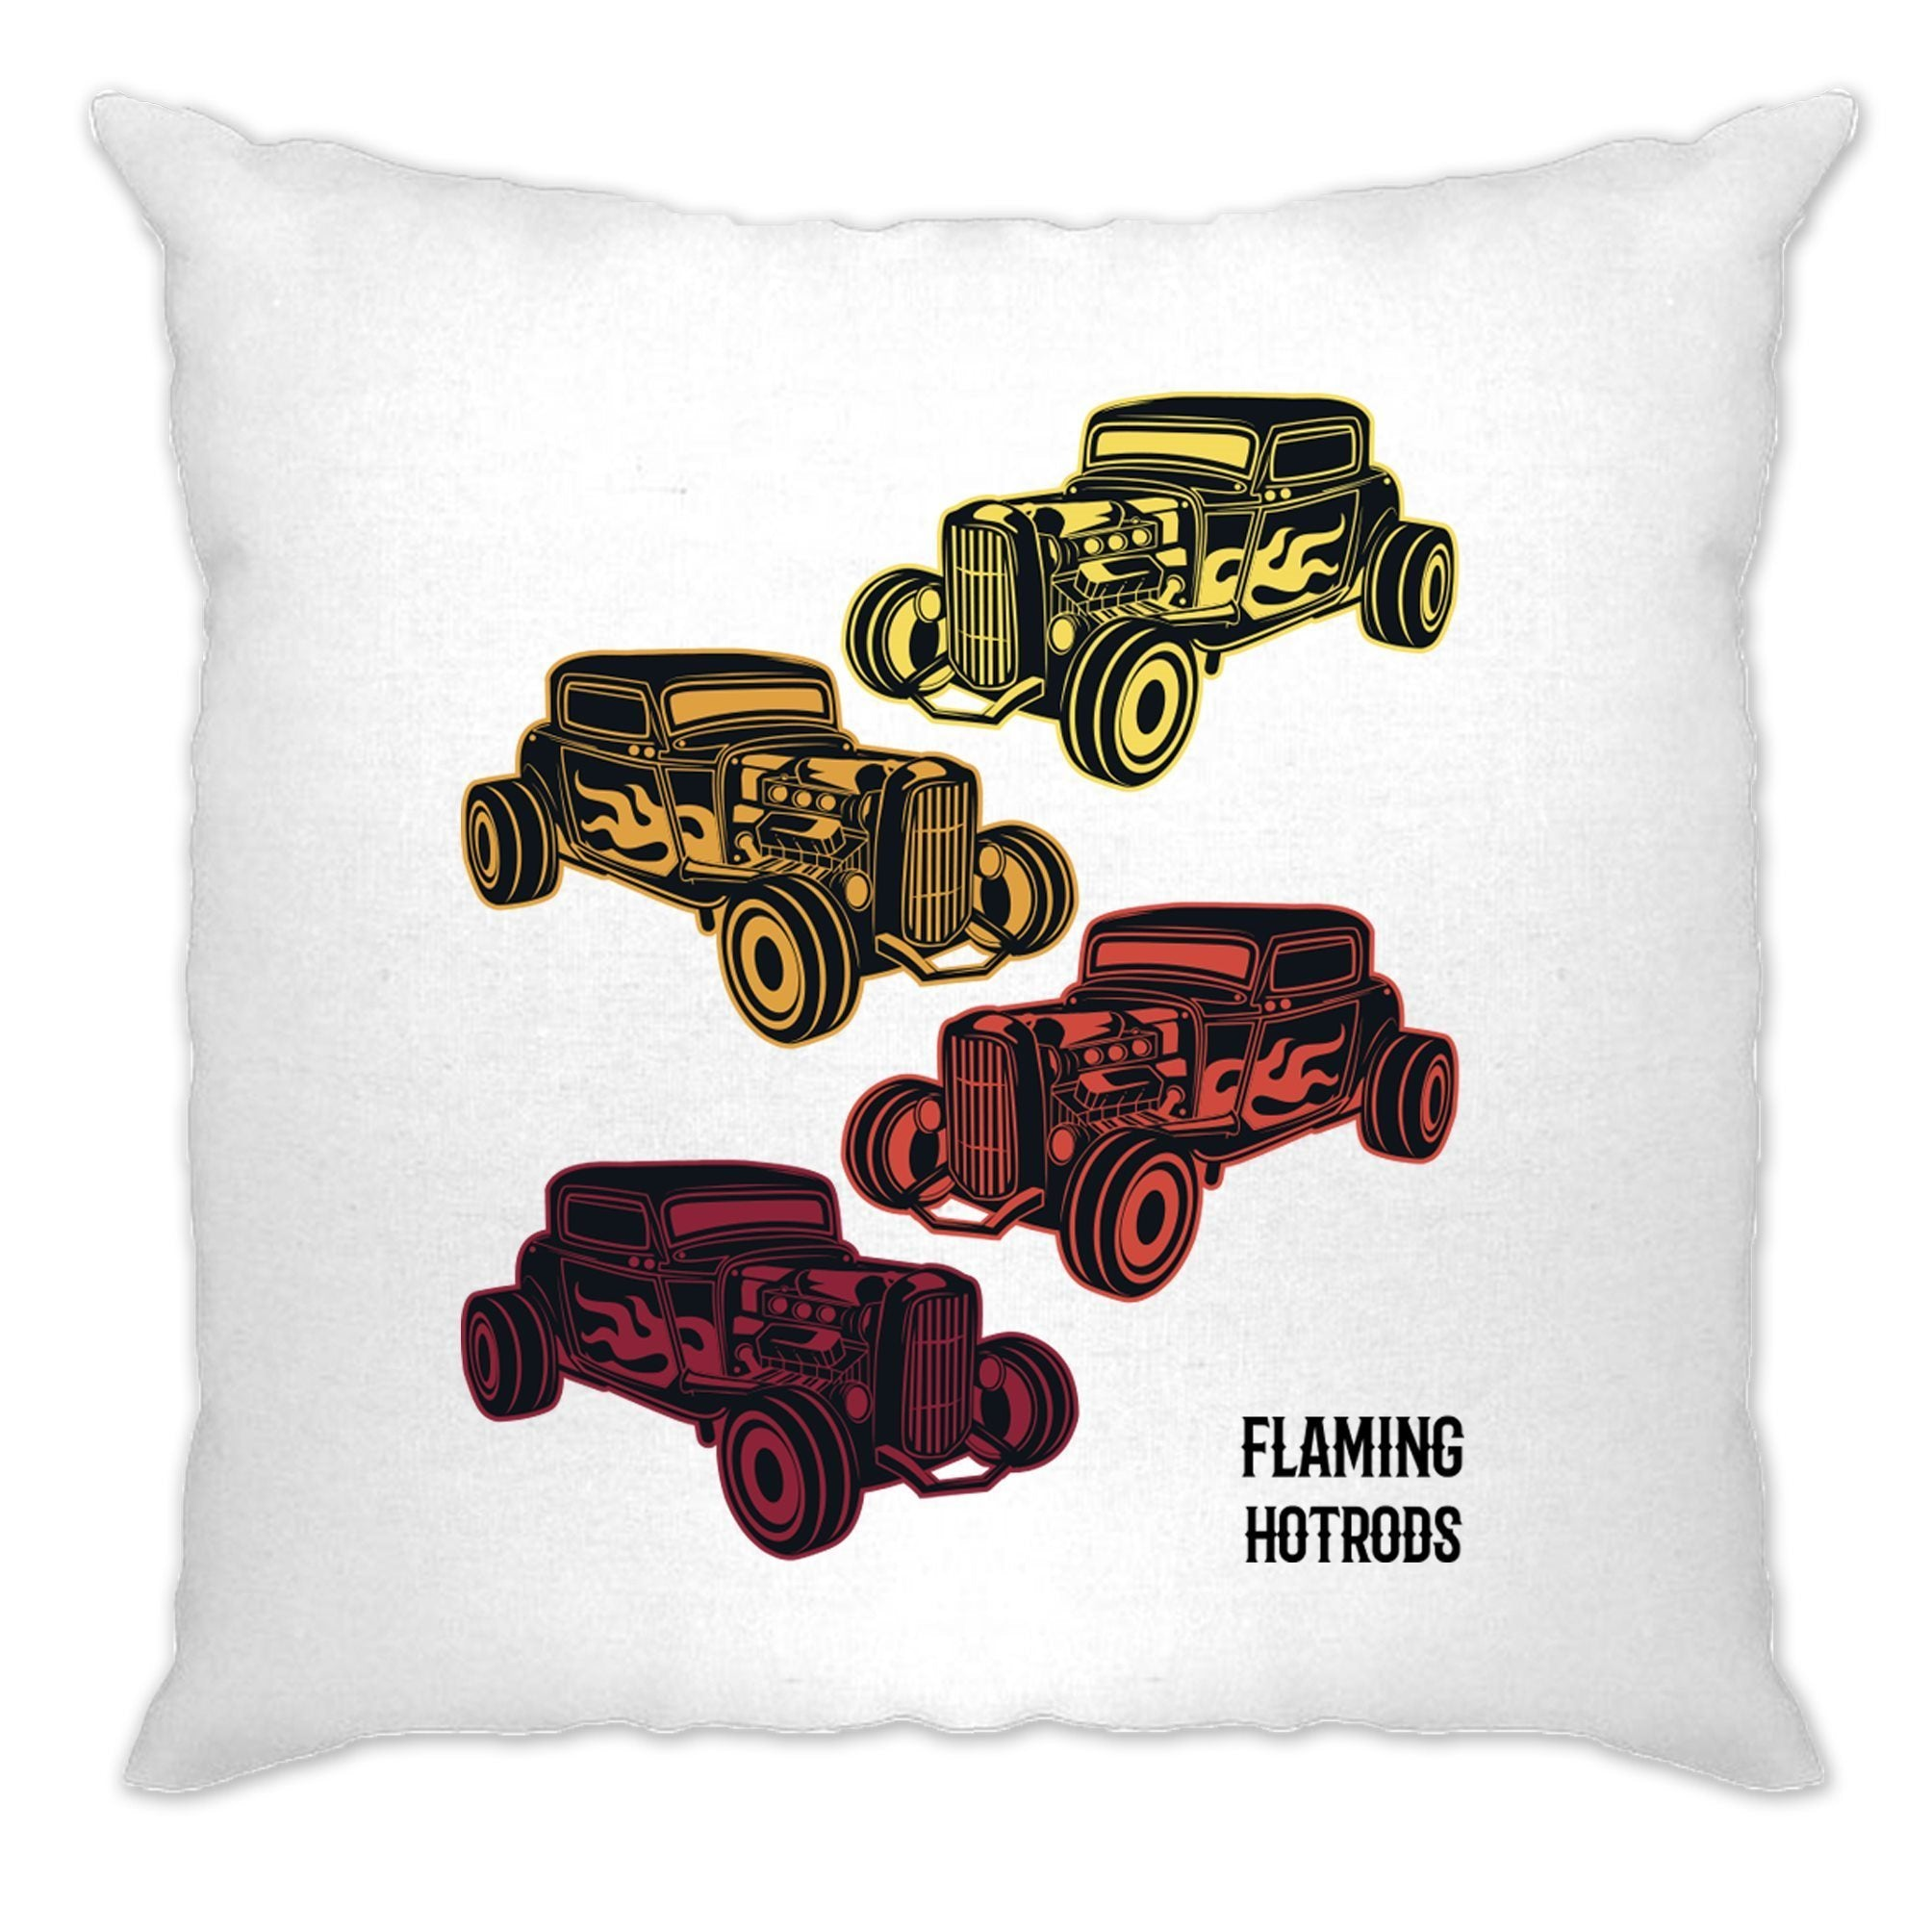 Vintage Cushion Cover Flaming Hot Rods Cars